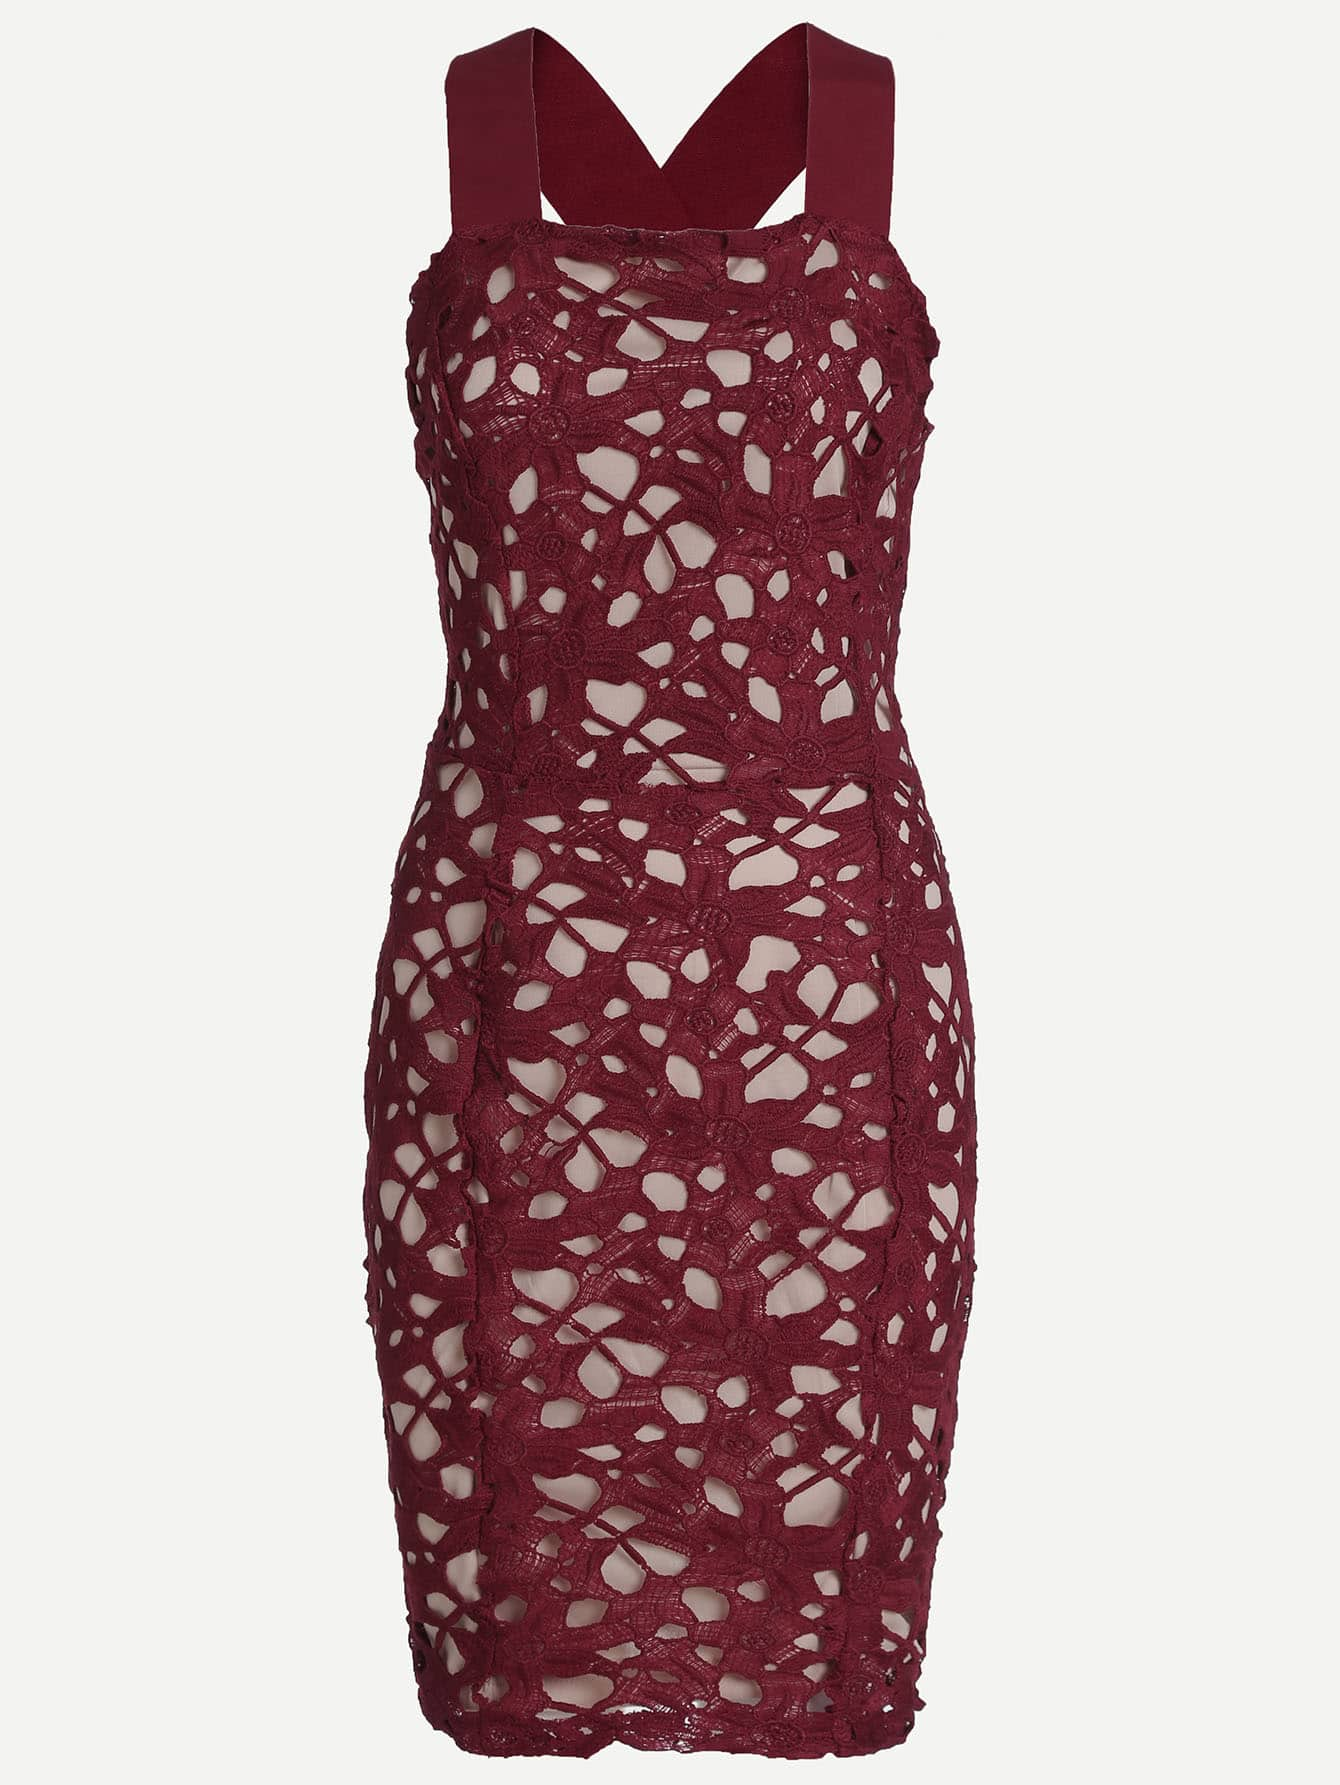 Burgundy Backless Hollow Out Lace Bodycon DressBurgundy Backless Hollow Out Lace Bodycon Dress<br><br>color: Burgundy<br>size: L,M,S